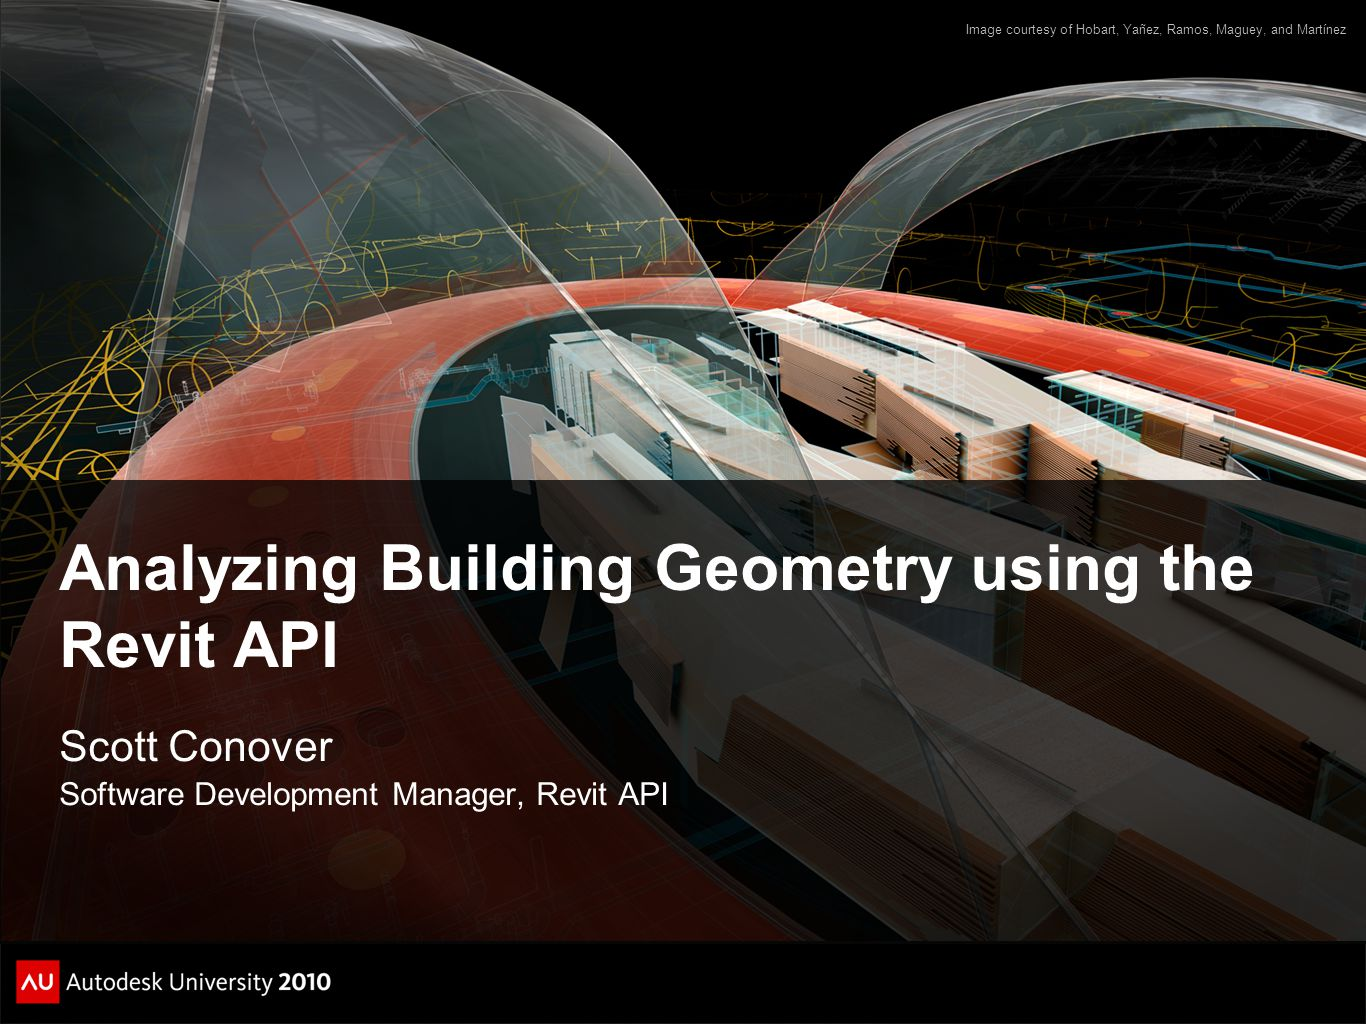 Analyzing Building Geometry using the Revit API